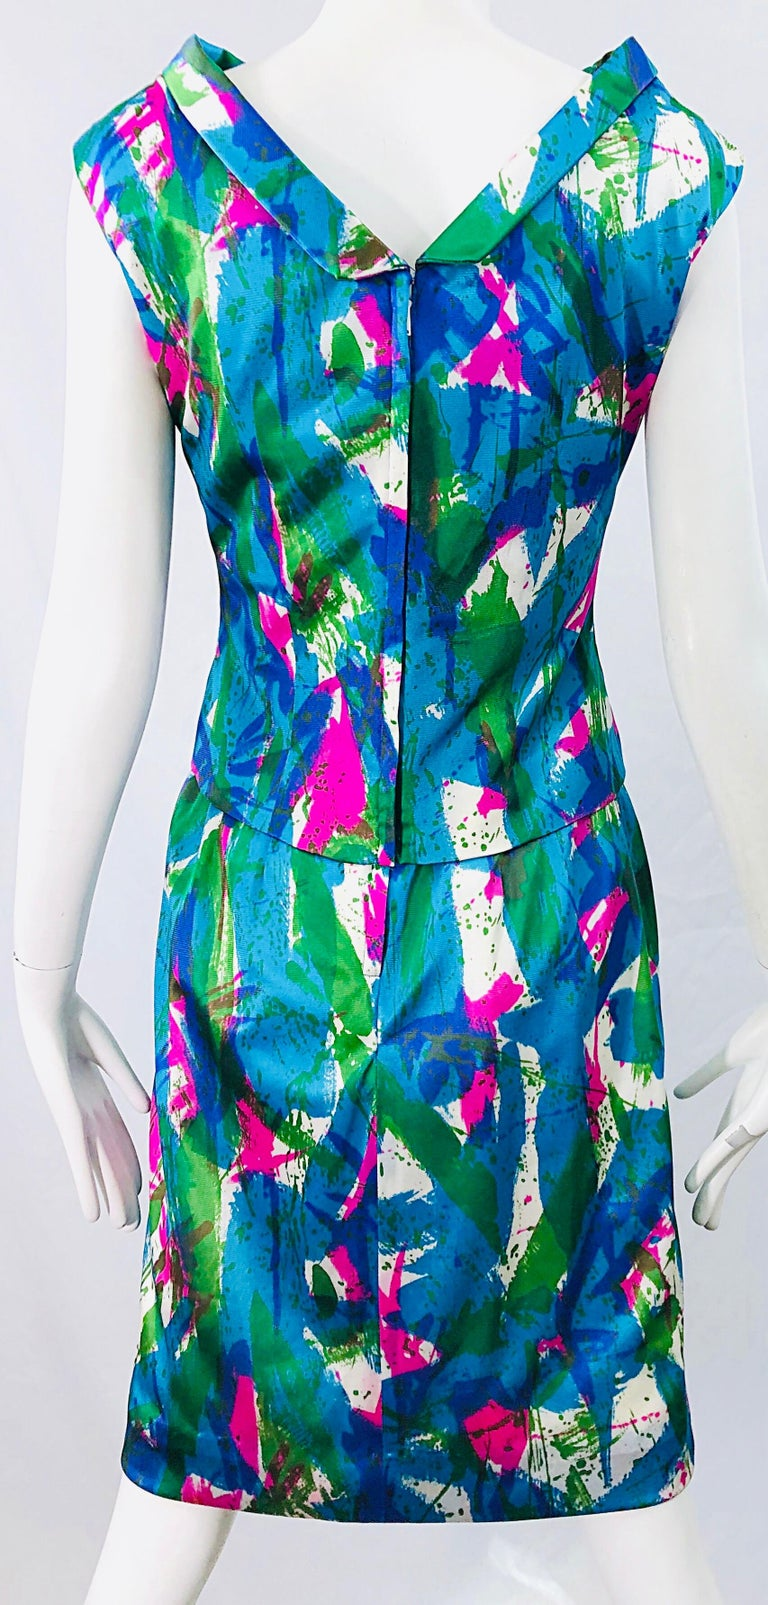 Chic 1960s Neon Abstract Print Two Piece Vintage 60s Sheath Dress + Top Blouse  For Sale 5